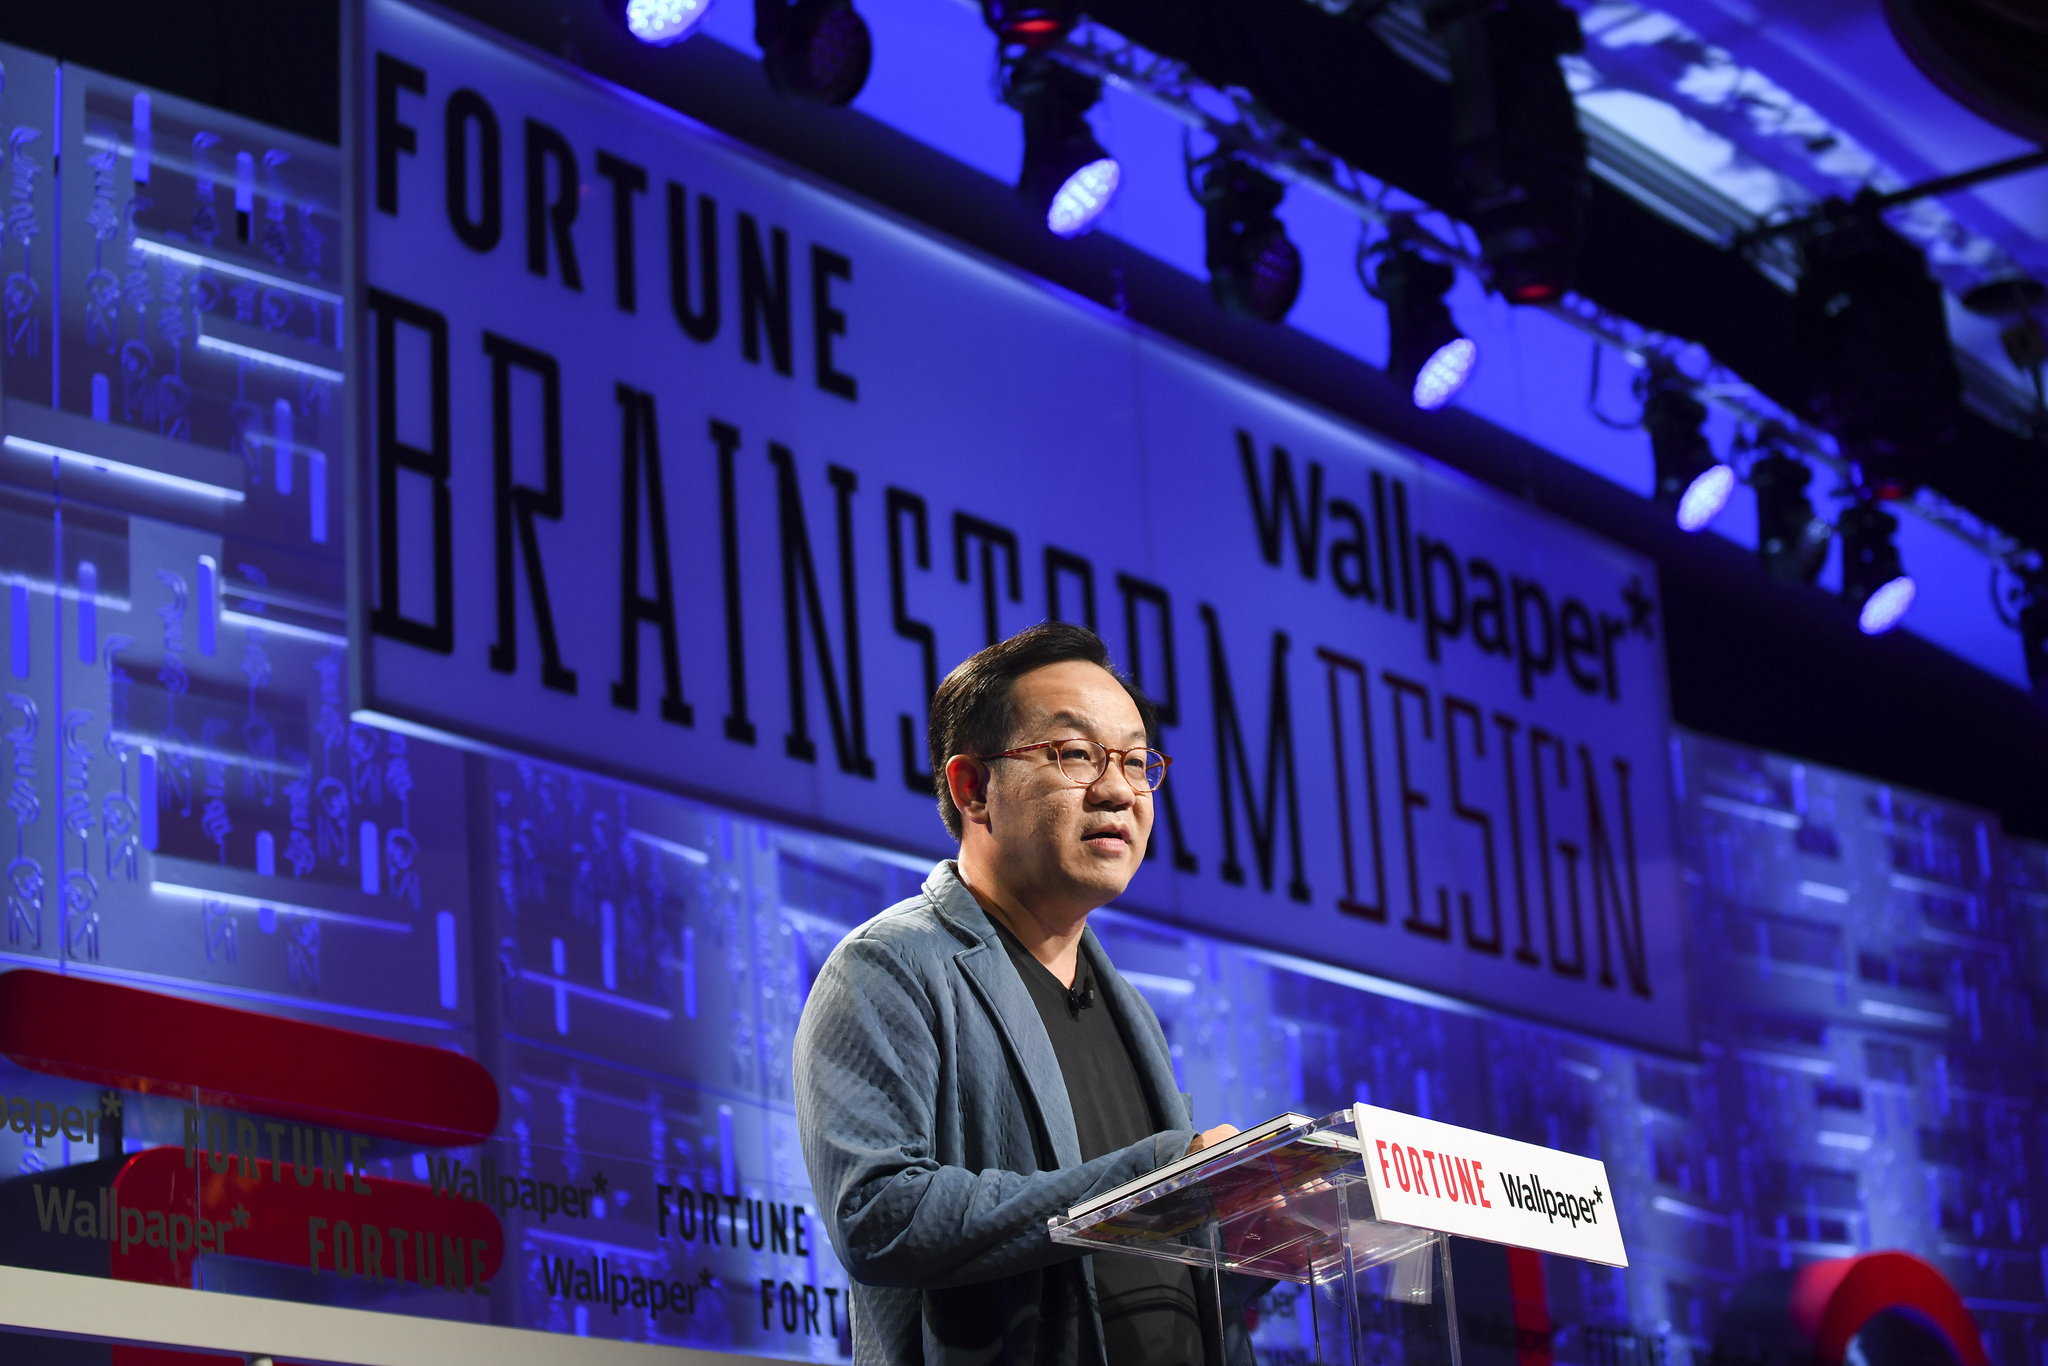 Mark Wee, executive director of the DesignSingapore Council, speaking at the 2019 Fortune Brainstorm Design conference in Singapore.